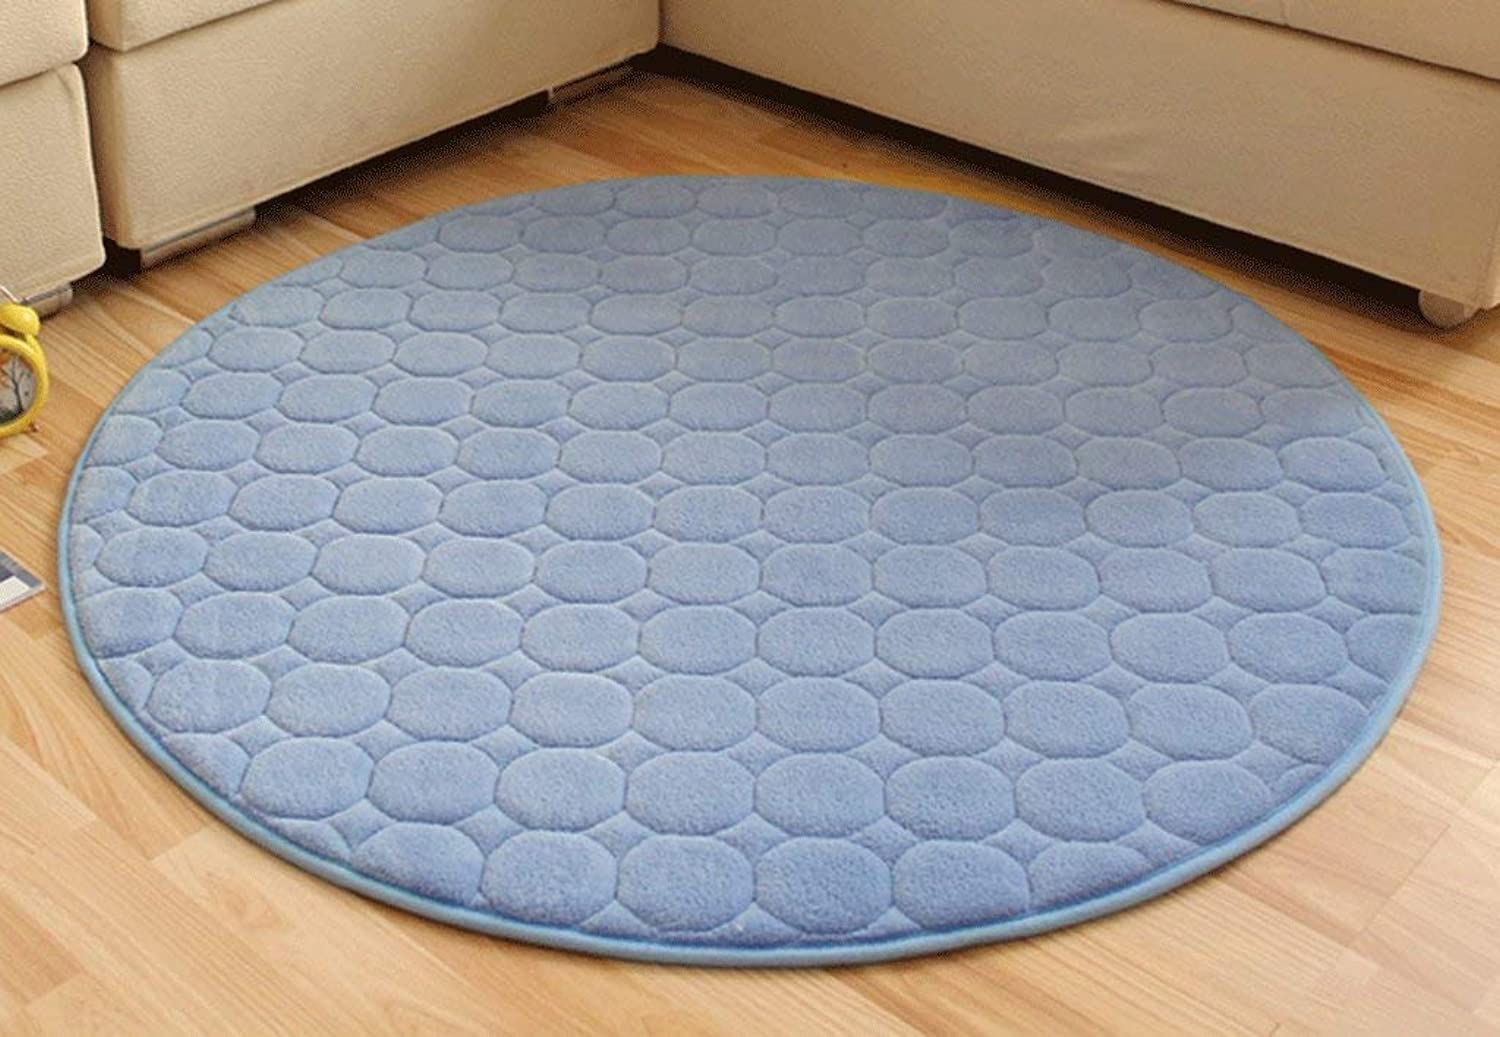 Royare Home Decorations mat Carpet, Thicker Non-Slip Memory Foam Round Carpet Computer Chair Living Room Coffee mats Bedroom Carpet Soft and Comfortable (color    5, Size   120  120cm)